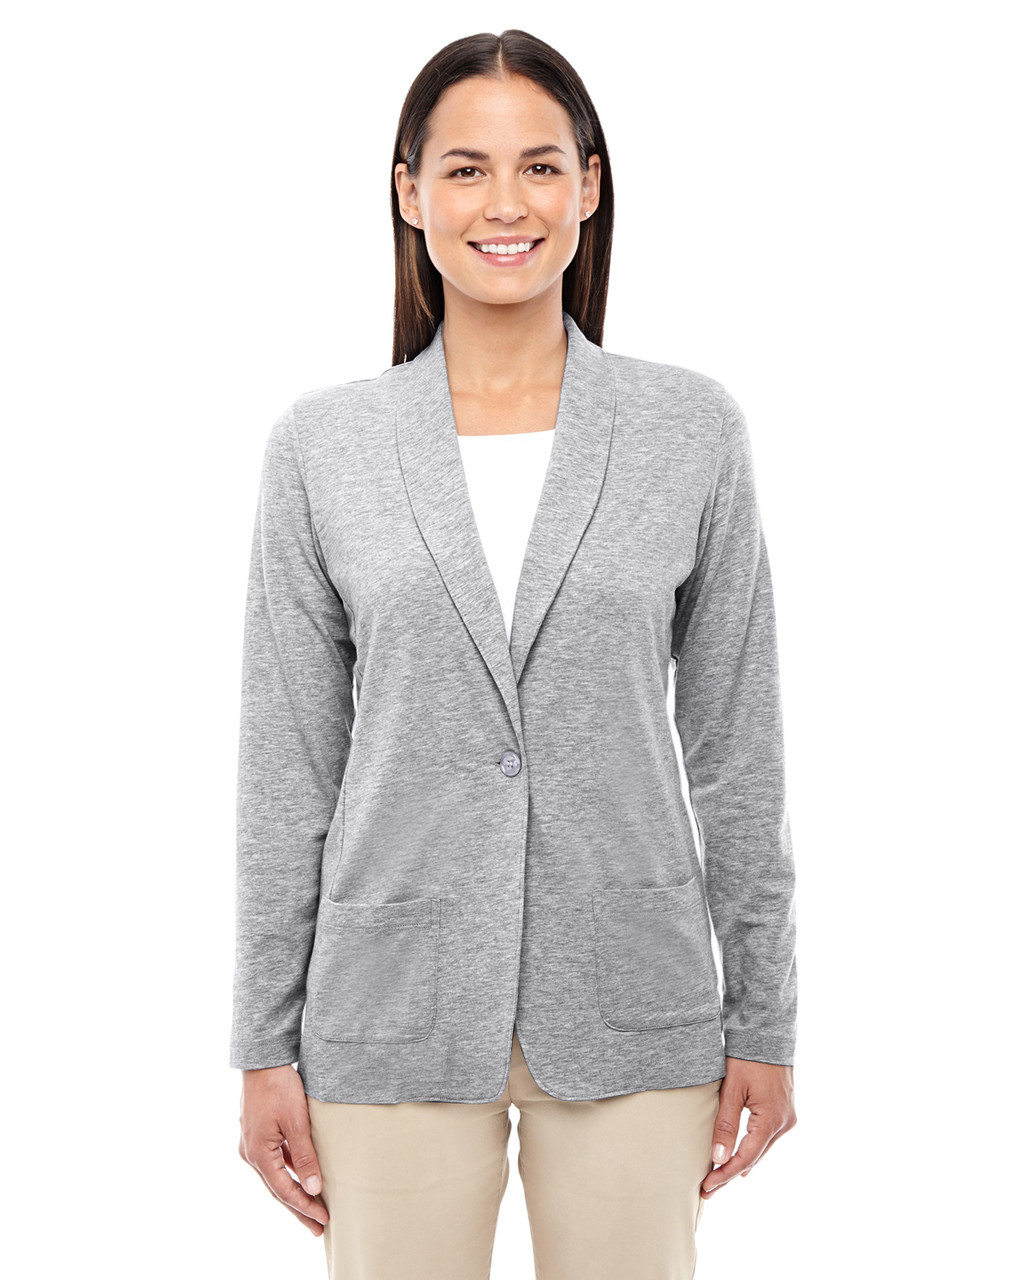 Grey Heather - DP462W Devon & Jones Ladies' Perfect Fit Shawl Collar Cardigan